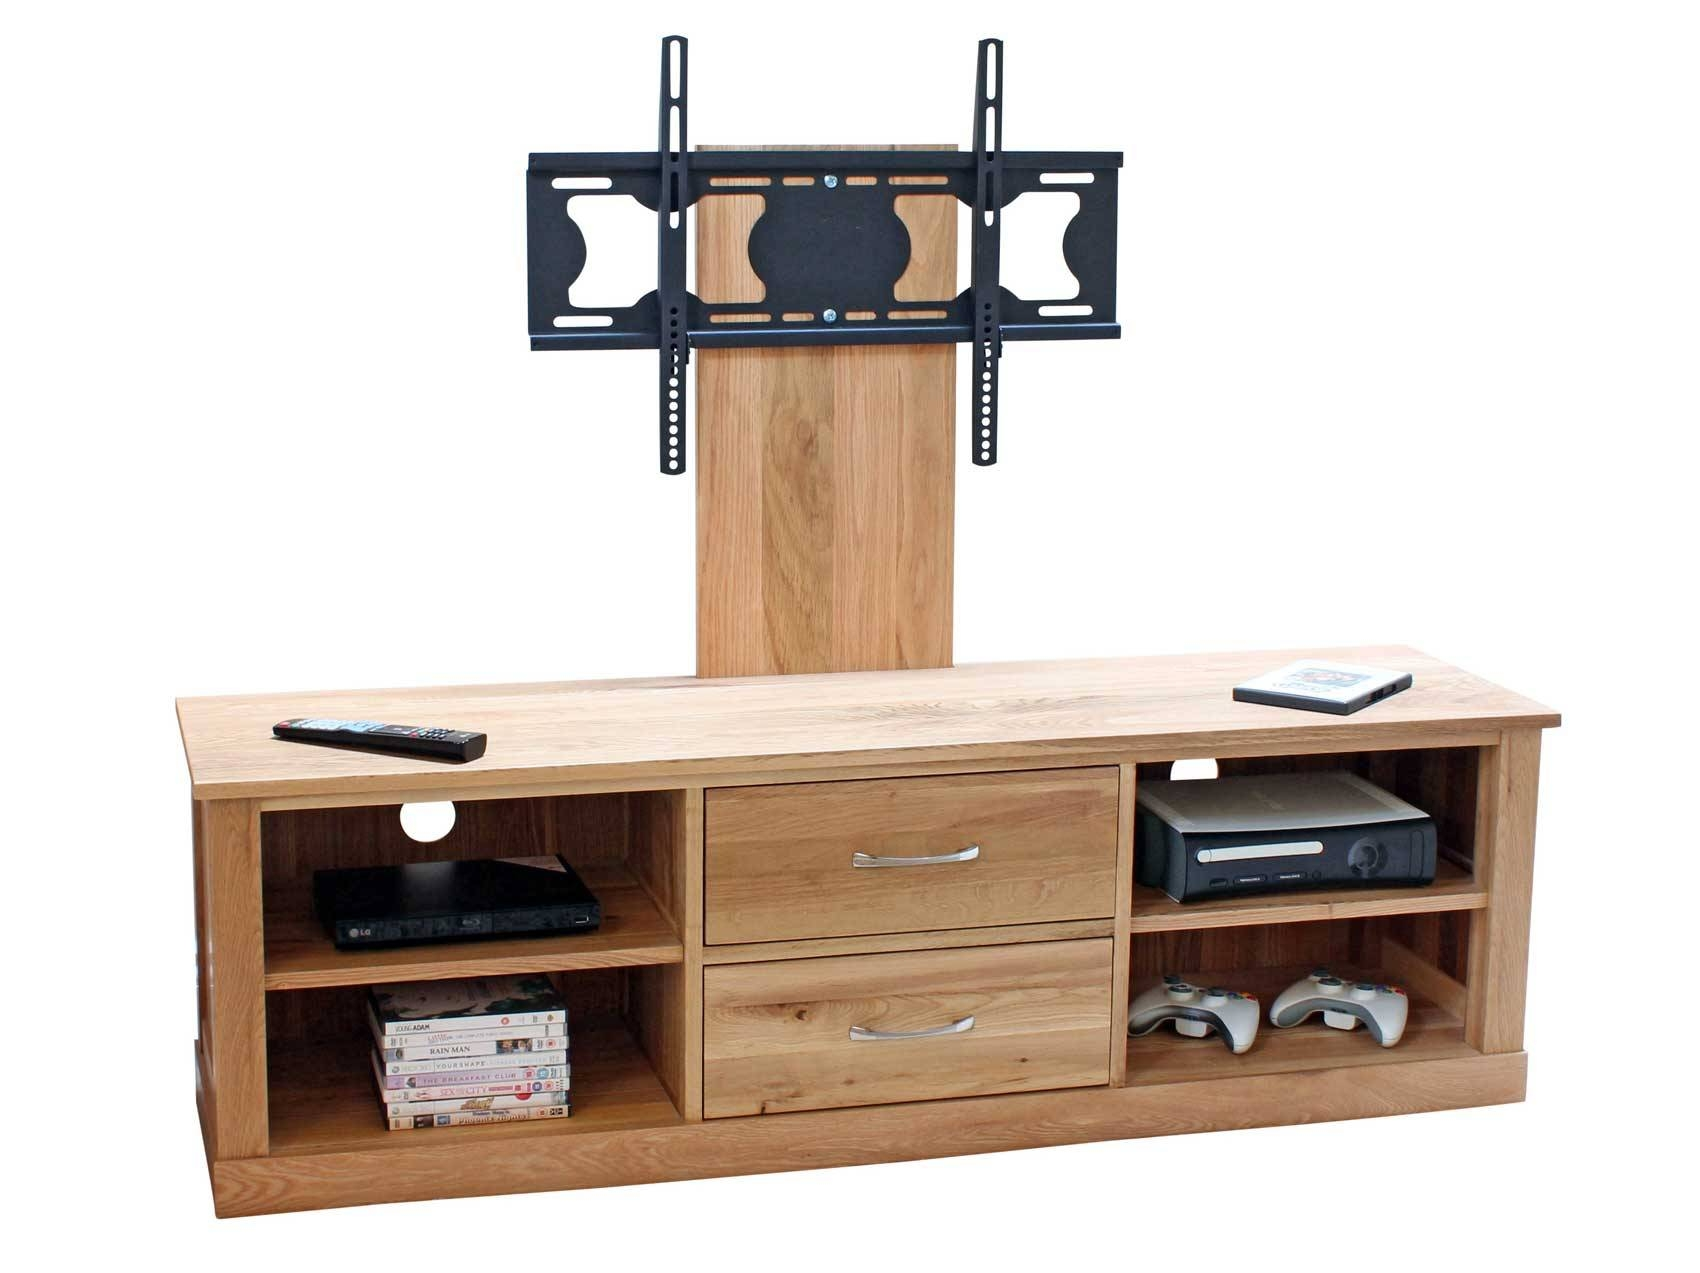 Oak Wooden Tv Stand With Mount For Flat Screen Of 14 Gorgeous inside Corner Oak Tv Stands For Flat Screen (Image 4 of 15)